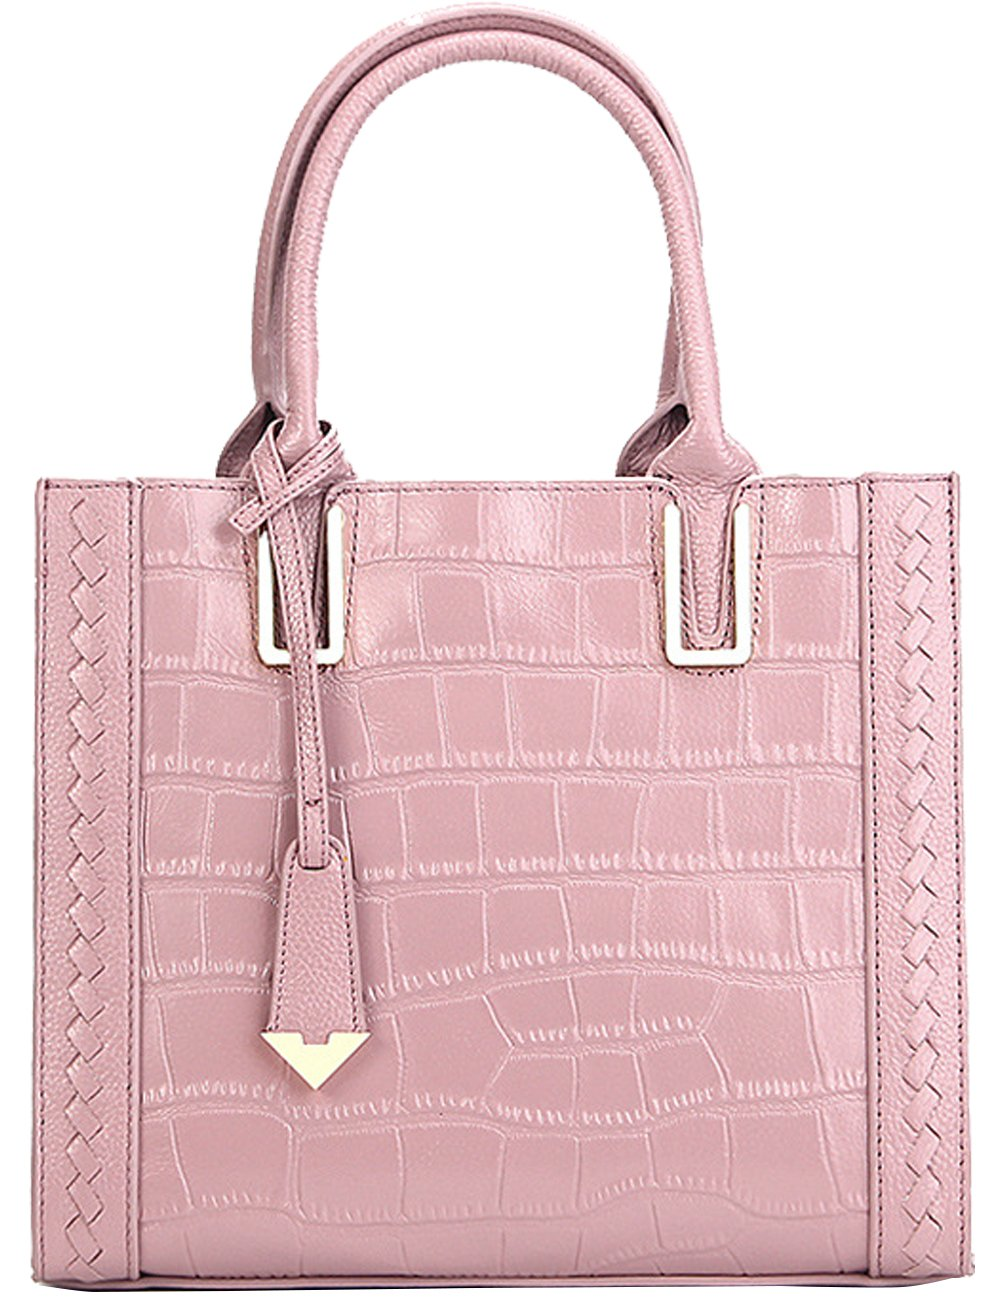 Menschwear Womens Genuine Leather Top Handle Satchel Bag Pink by Menschwear (Image #3)